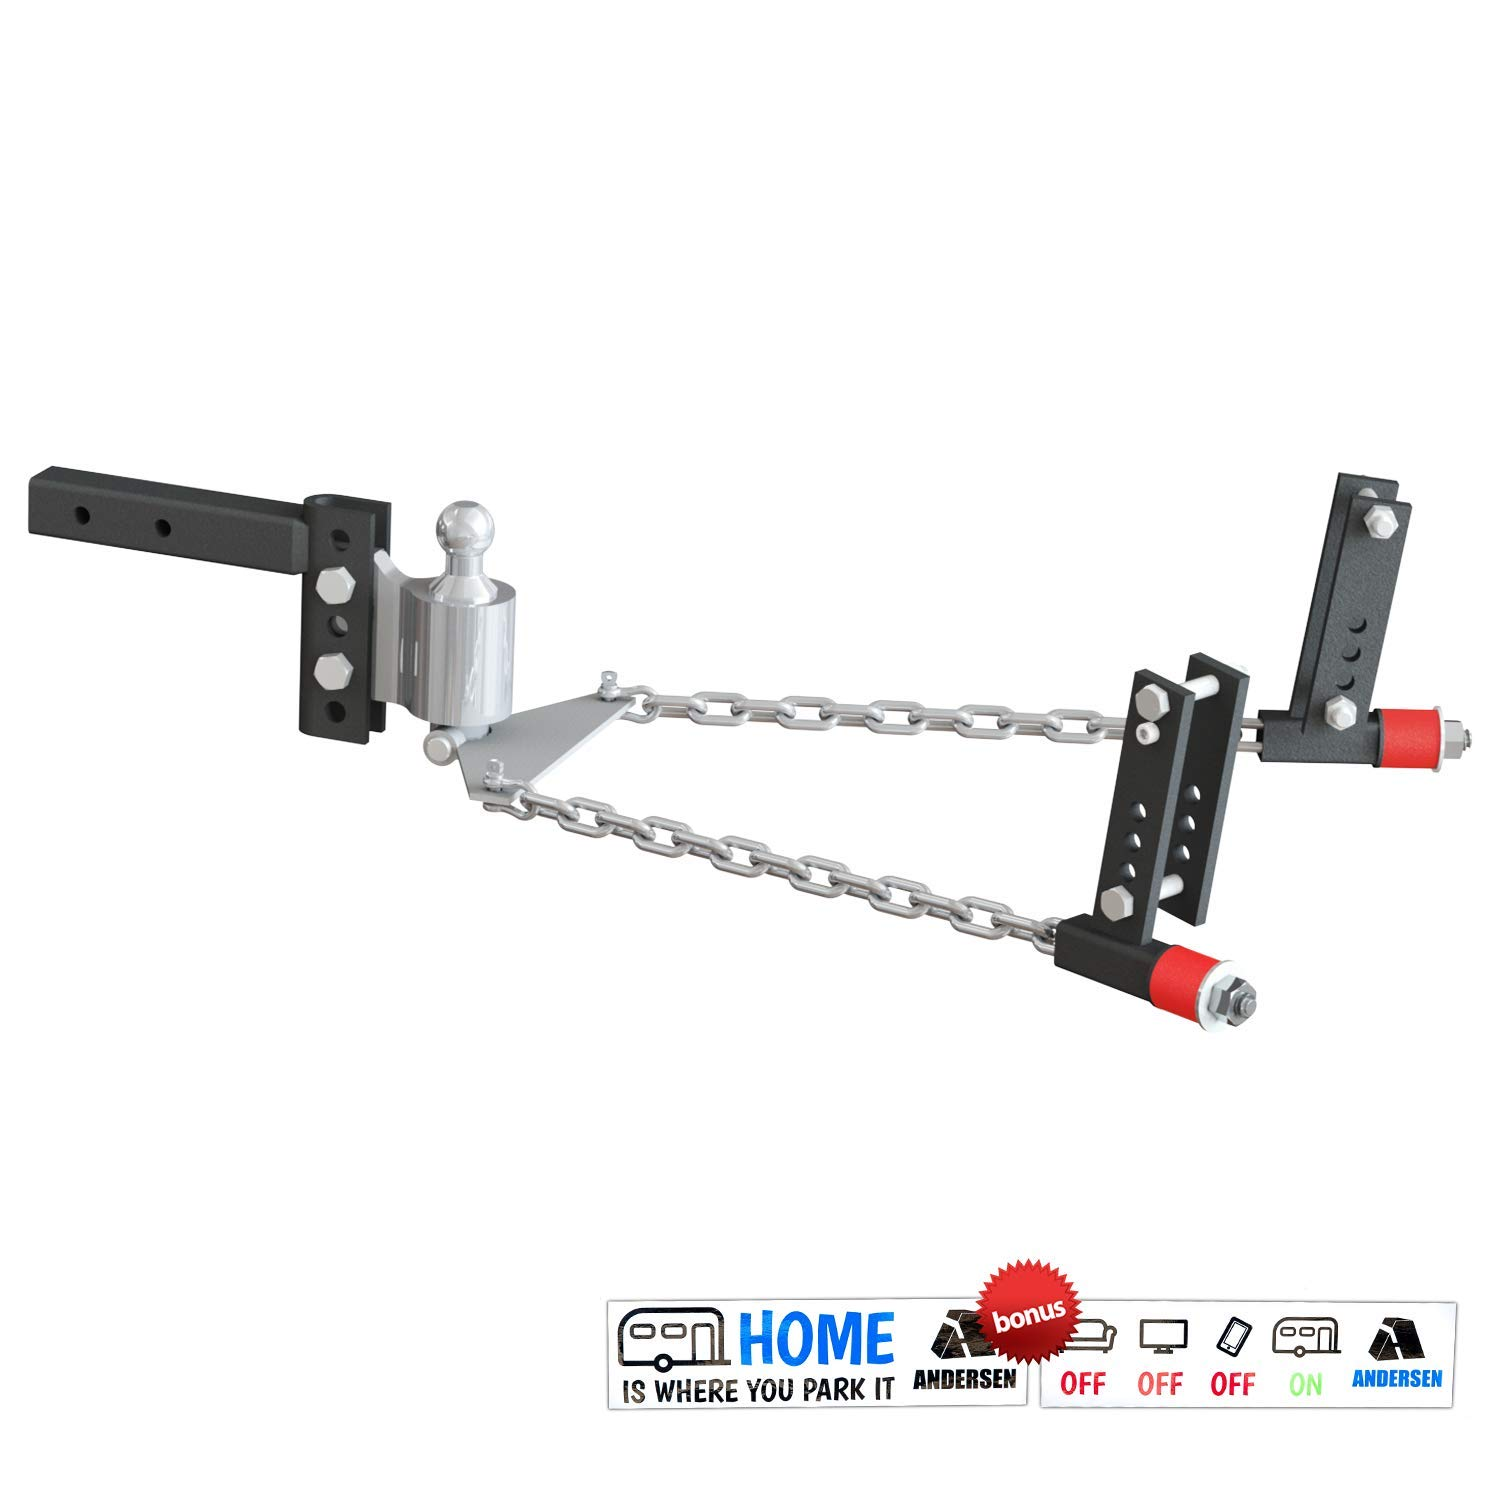 Andersen Hitches 3350 | No Sway Weight Distribution Hitch | 4'' Drop-Rise | 2 5-16'' Ball | 3'', 4'', 5'', 6'' Universal Frame Brackets | Includes 2 Bumper Stickers by Andersen Hitches